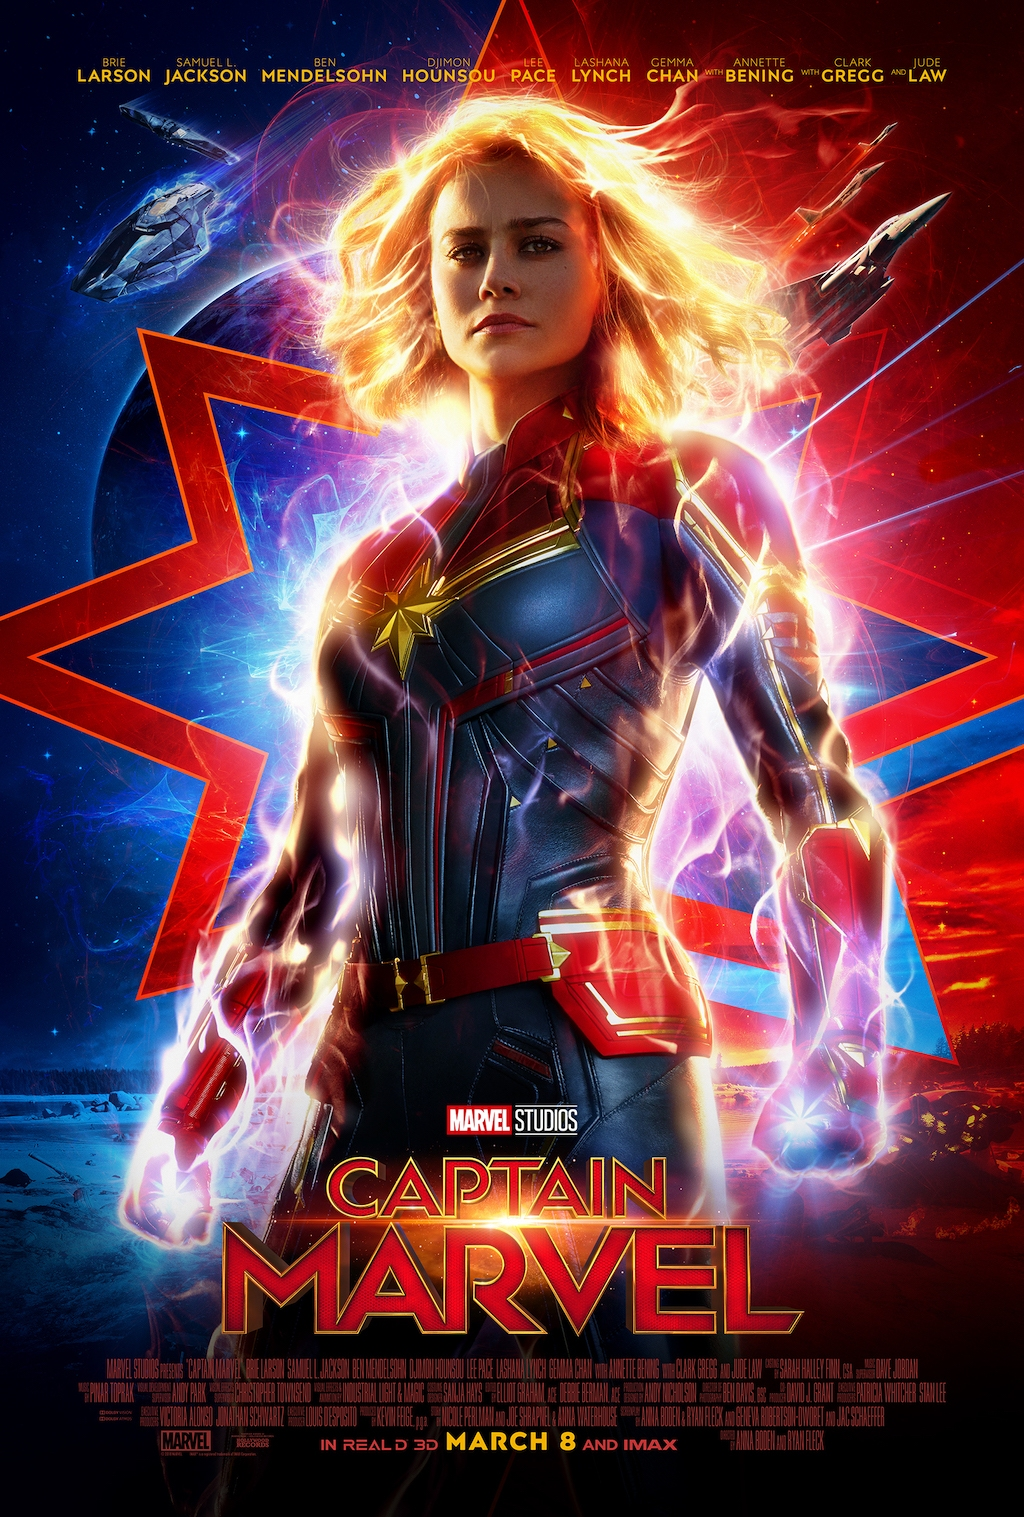 Who's the most powerful hero in the universe? Carol Danvers! Goose the cat who steals the scene more than once. CAPTAIN MARVEL movie is a must see.